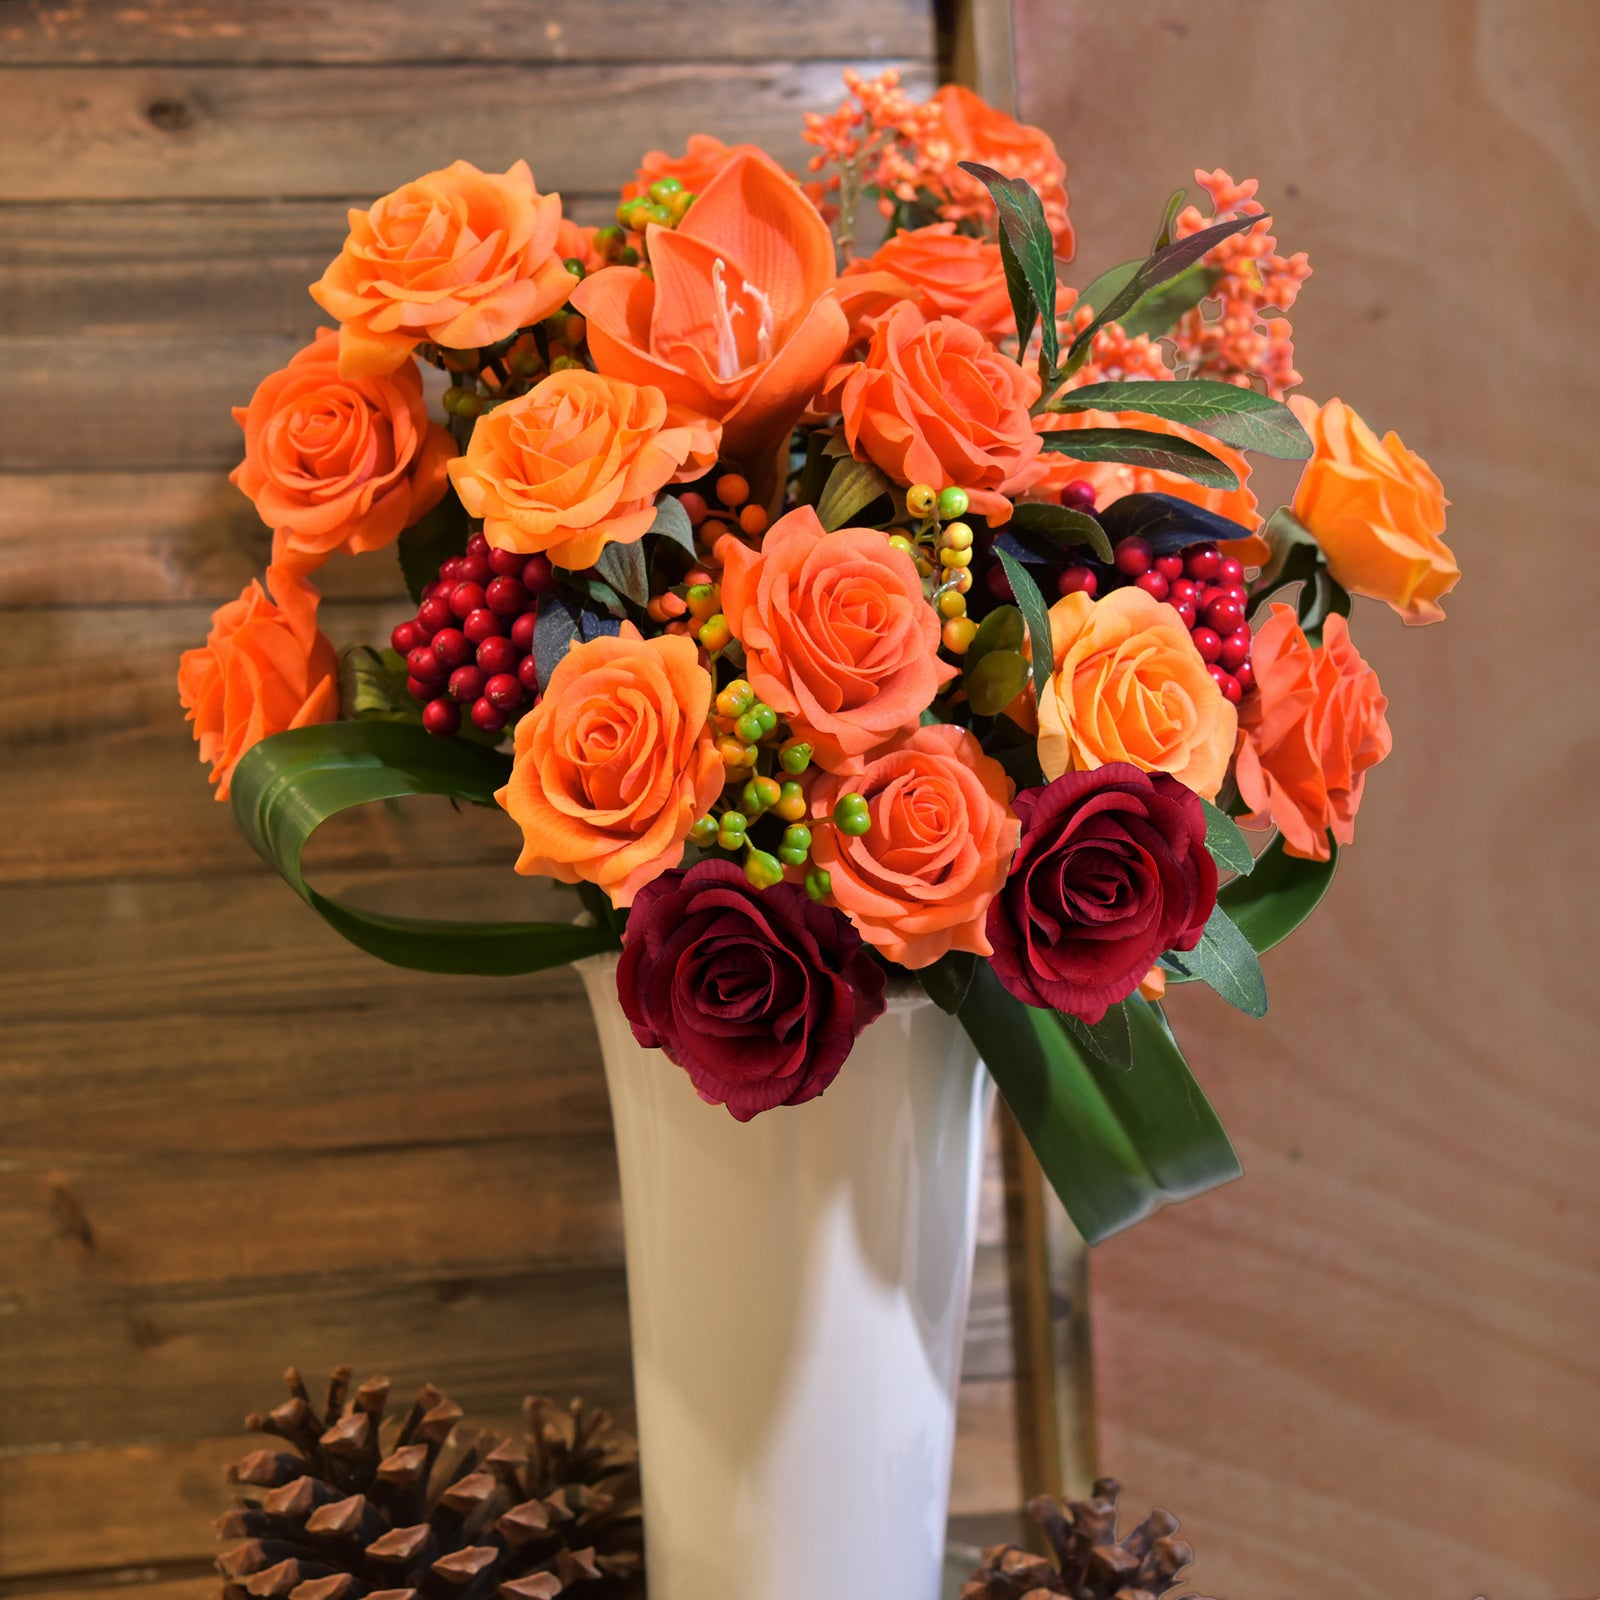 Real Touch 10 Stems Tangerine Silk Artificial Roses Flowers 'Petals Feel and Look like Fresh Roses'